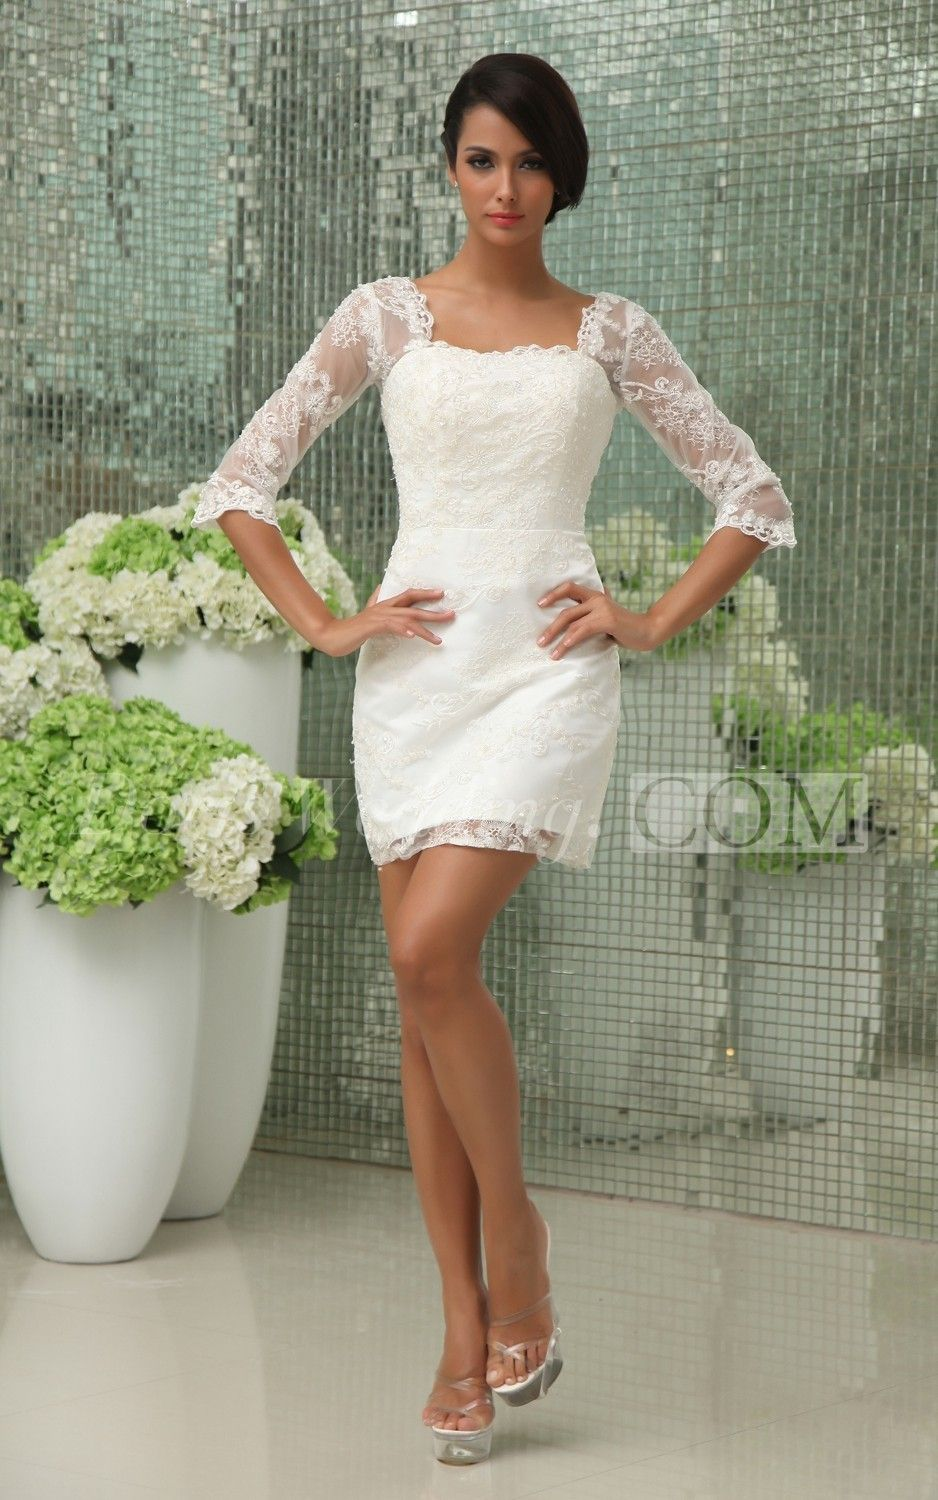 Short white dresses for wedding reception  Vintage HalfSleeve Short Dress With Lace Overlay  Lace overlay